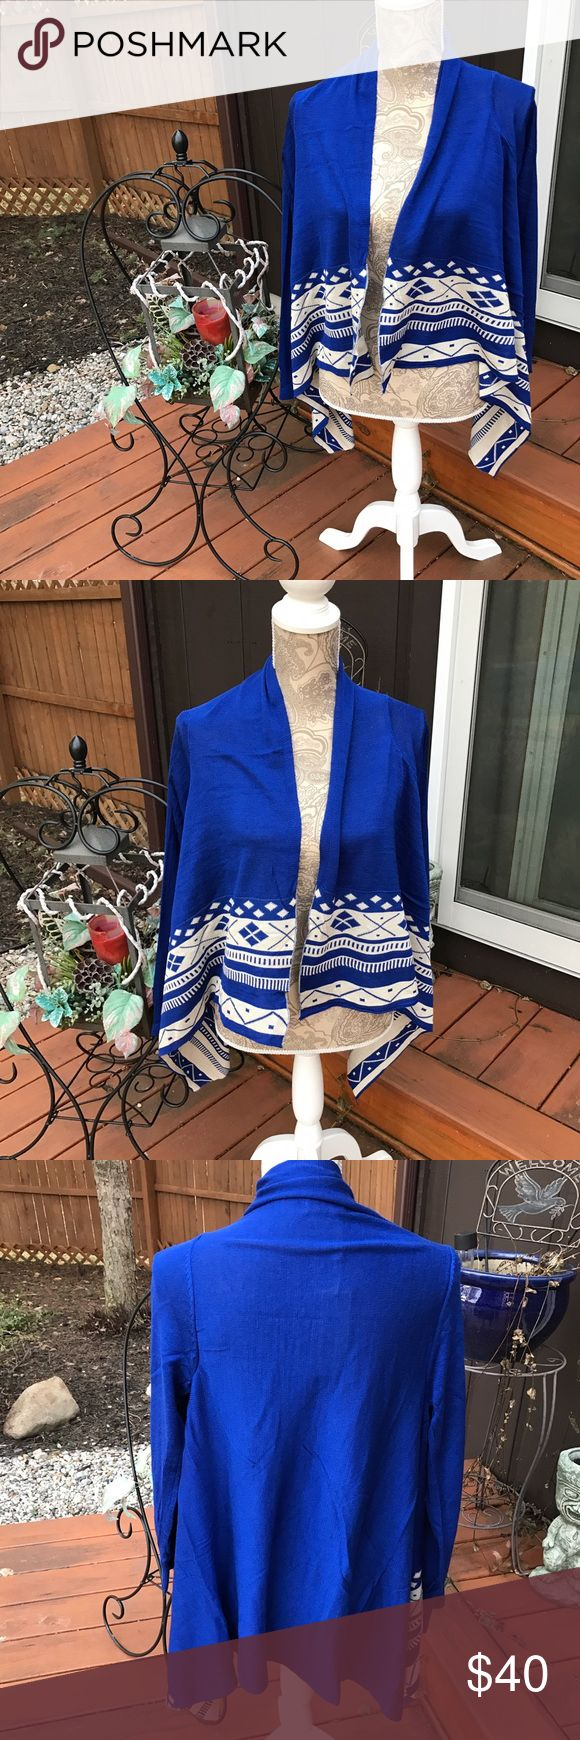 NWT ROYAL BLUE & OFF WHITE OPEN CARDIGAN SIZE SML NEW BEAUTIFUL OPEN FRONT DRAPED CARDIGAN ROYAL BLUE & OFF WHITE SIZE SMALL WITH PRETTY DESIGN Julia Fashion Sweaters Cardigans